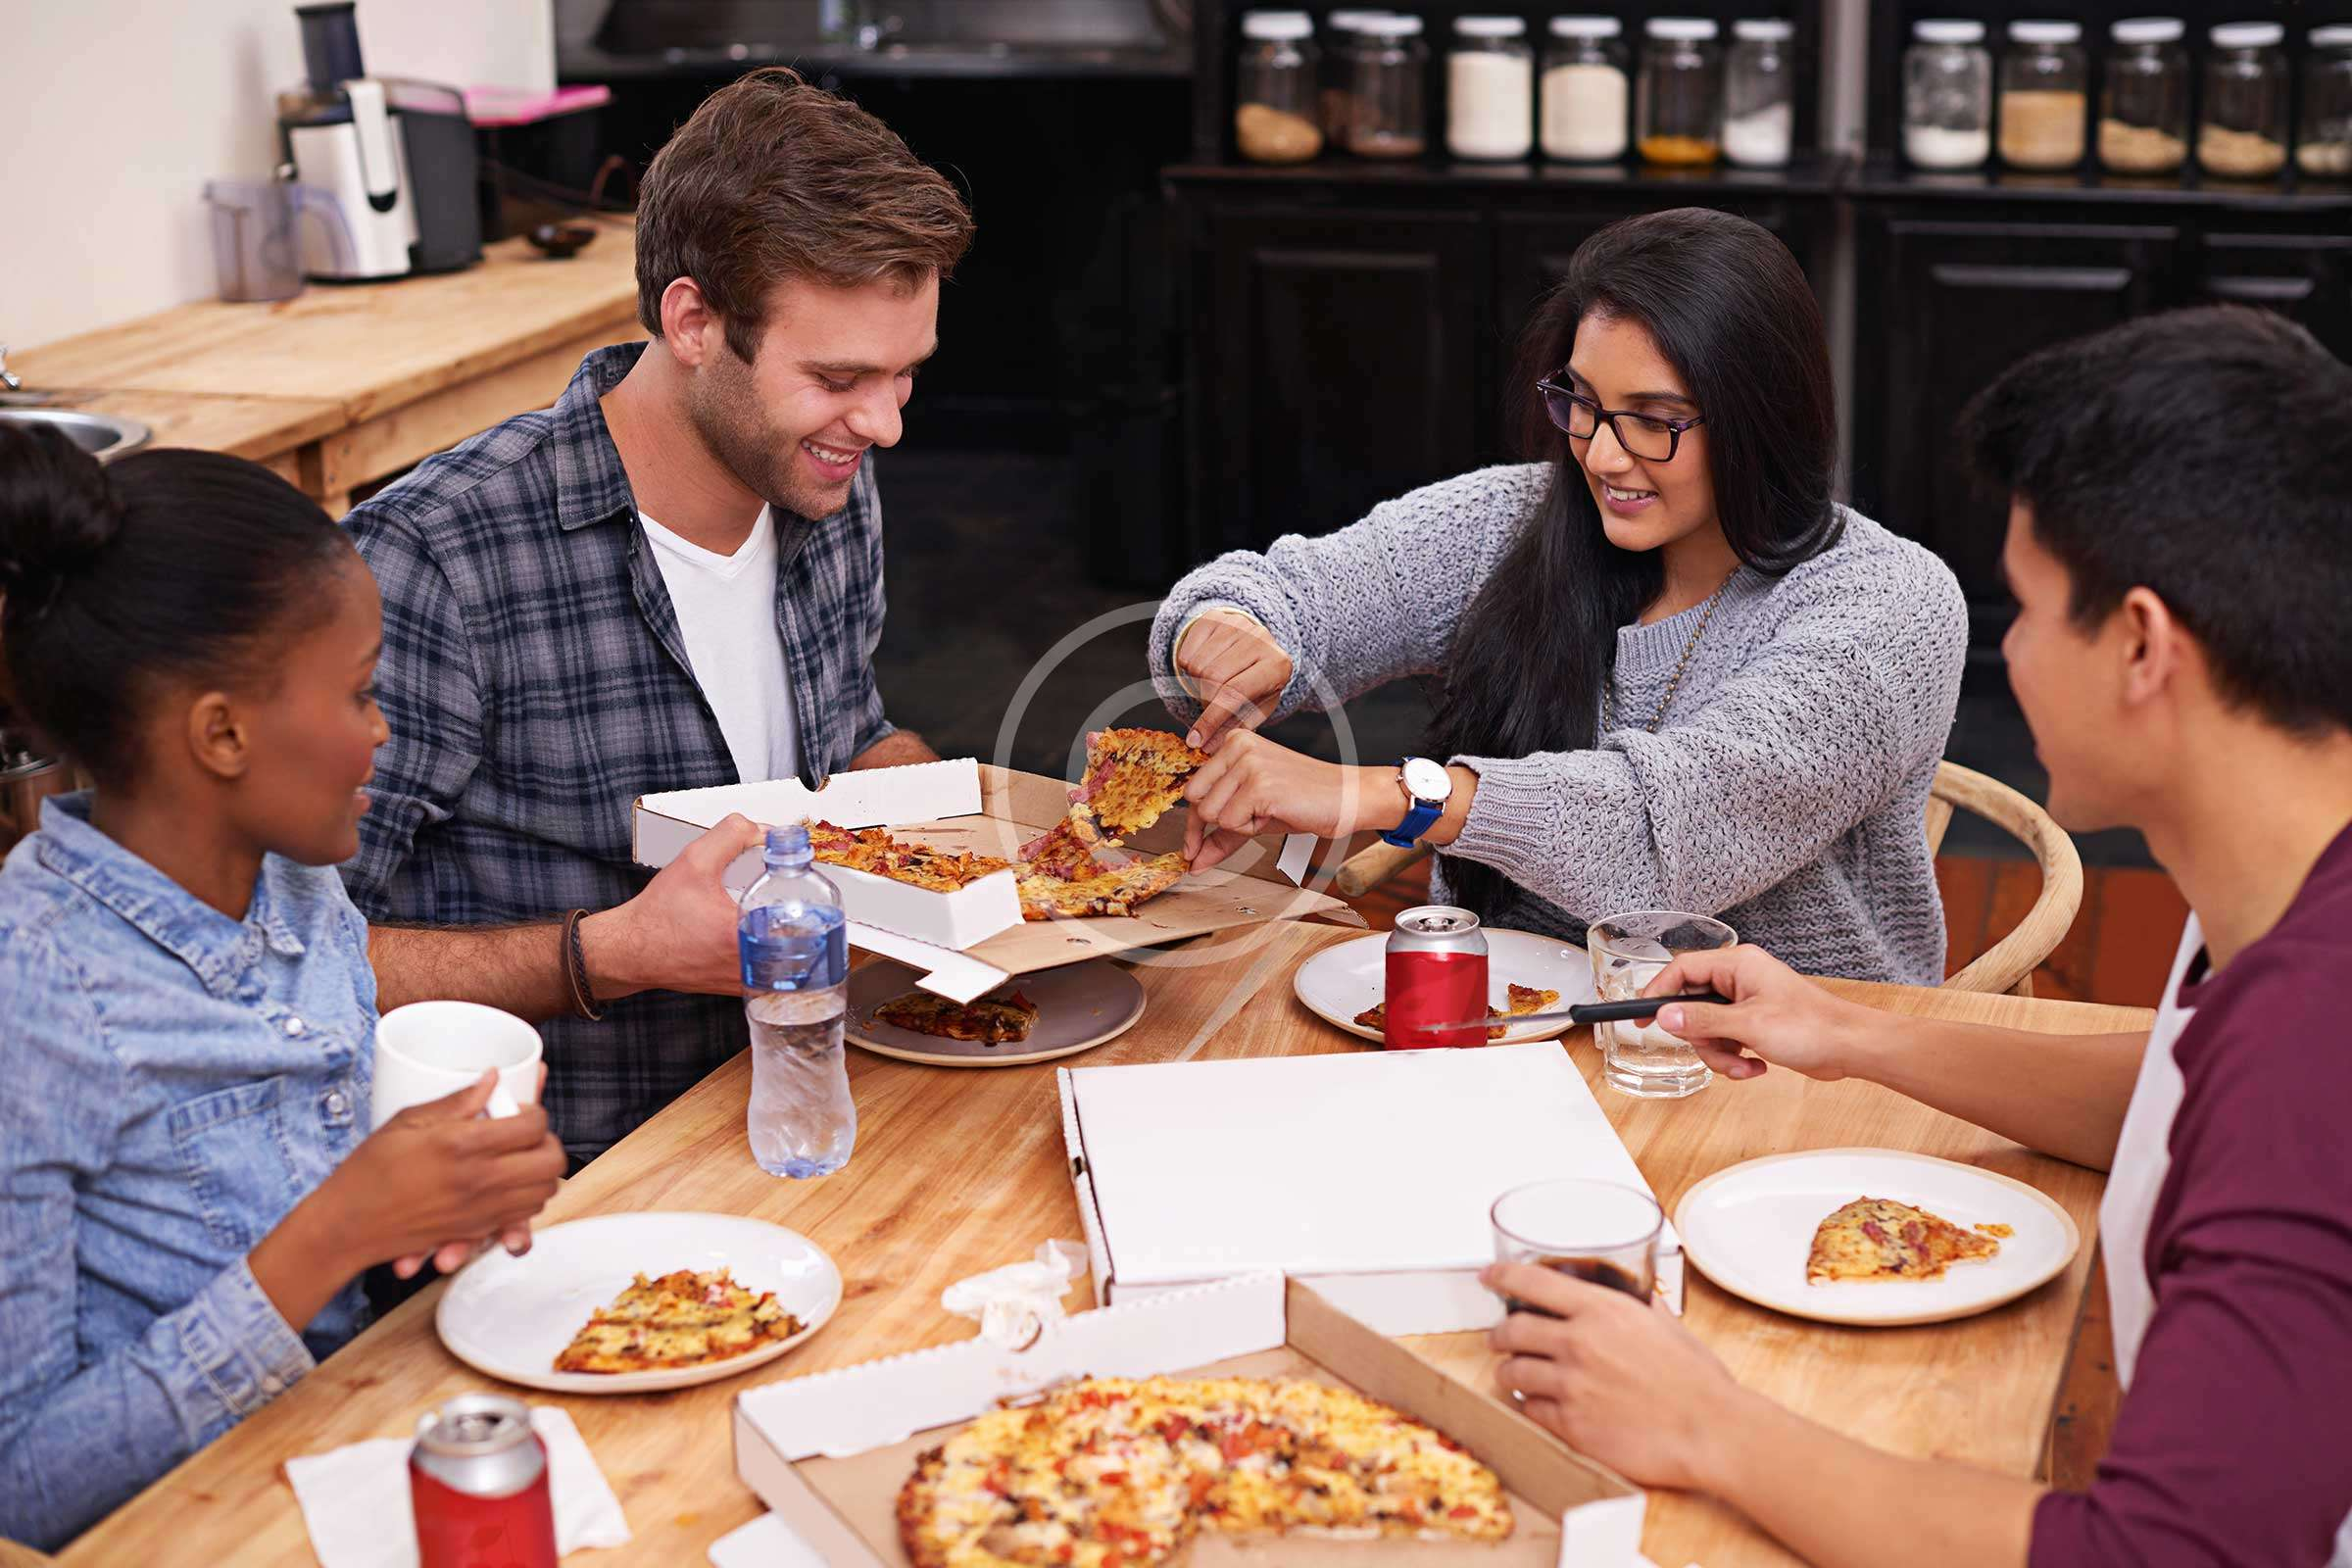 5 Reasons to Order Catering for Your Next Meeting